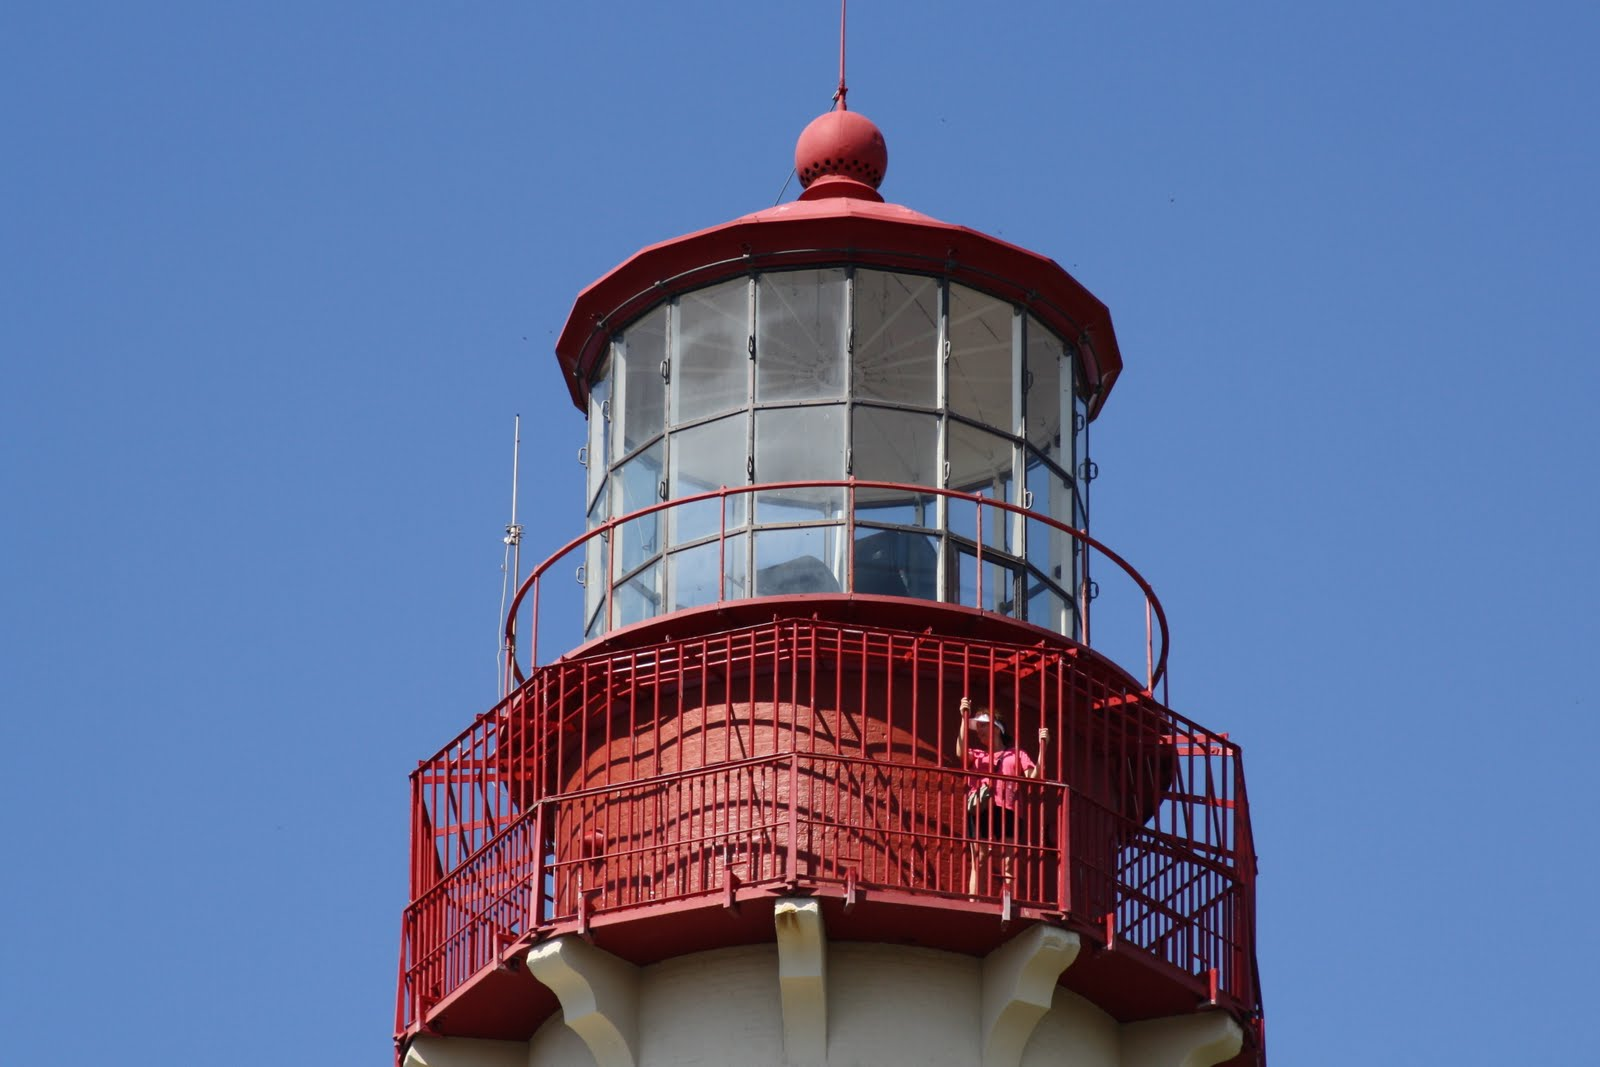 The upper section of the lighthouse.